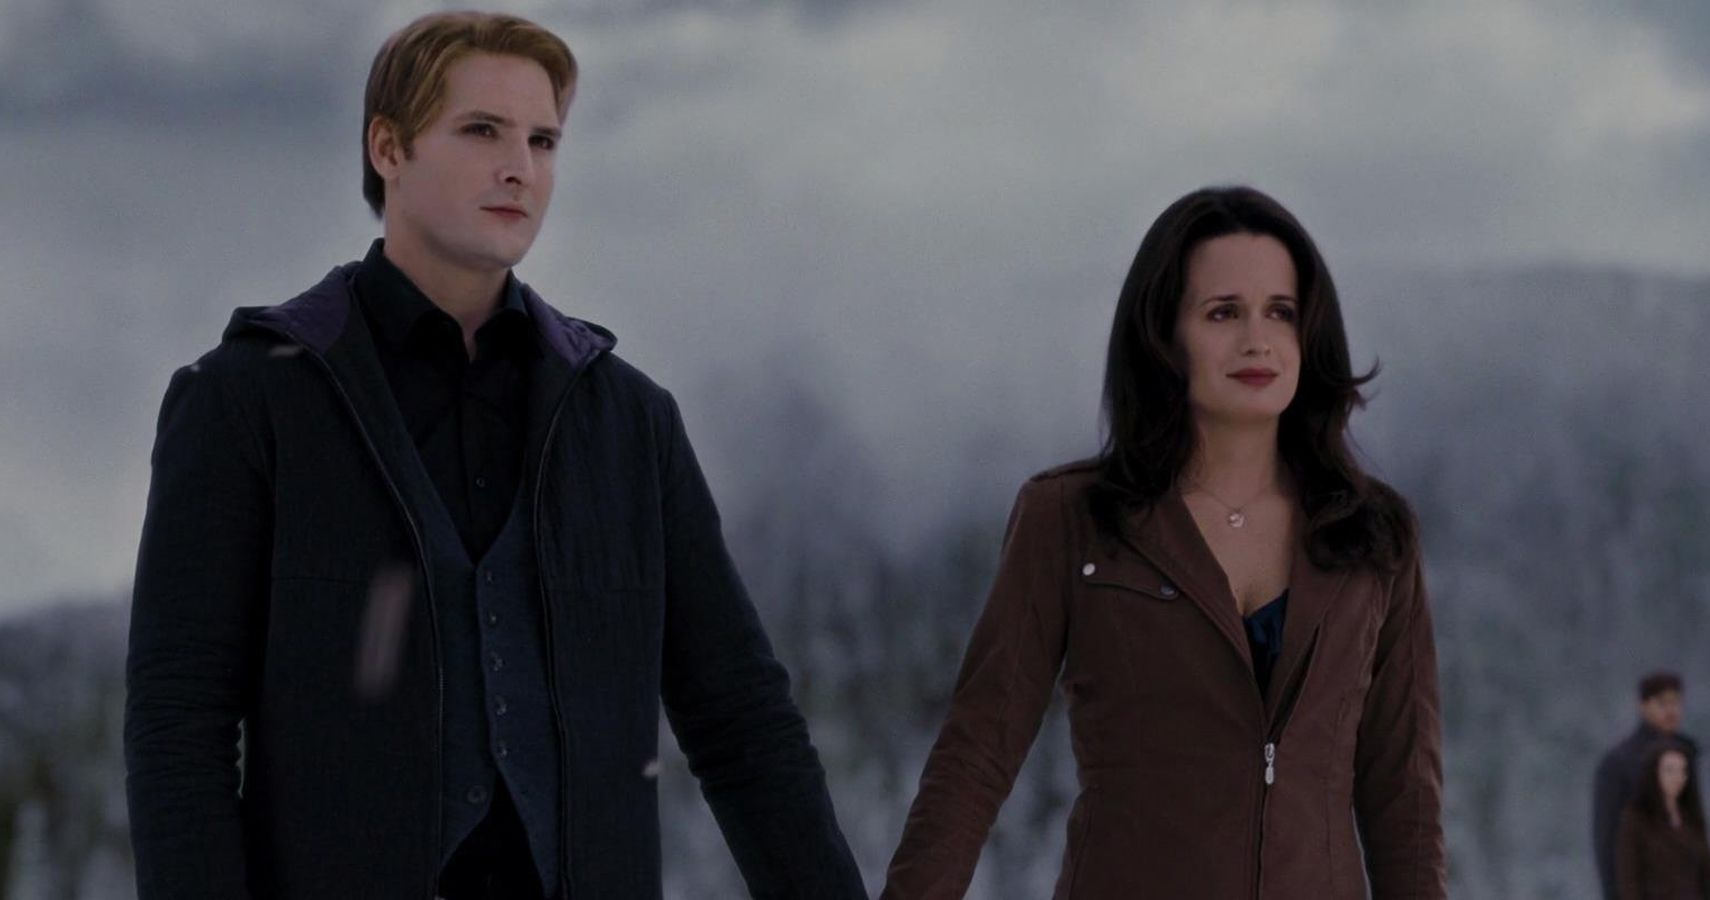 Twilight: 25 Things That Make No Sense About Carlise And Esme